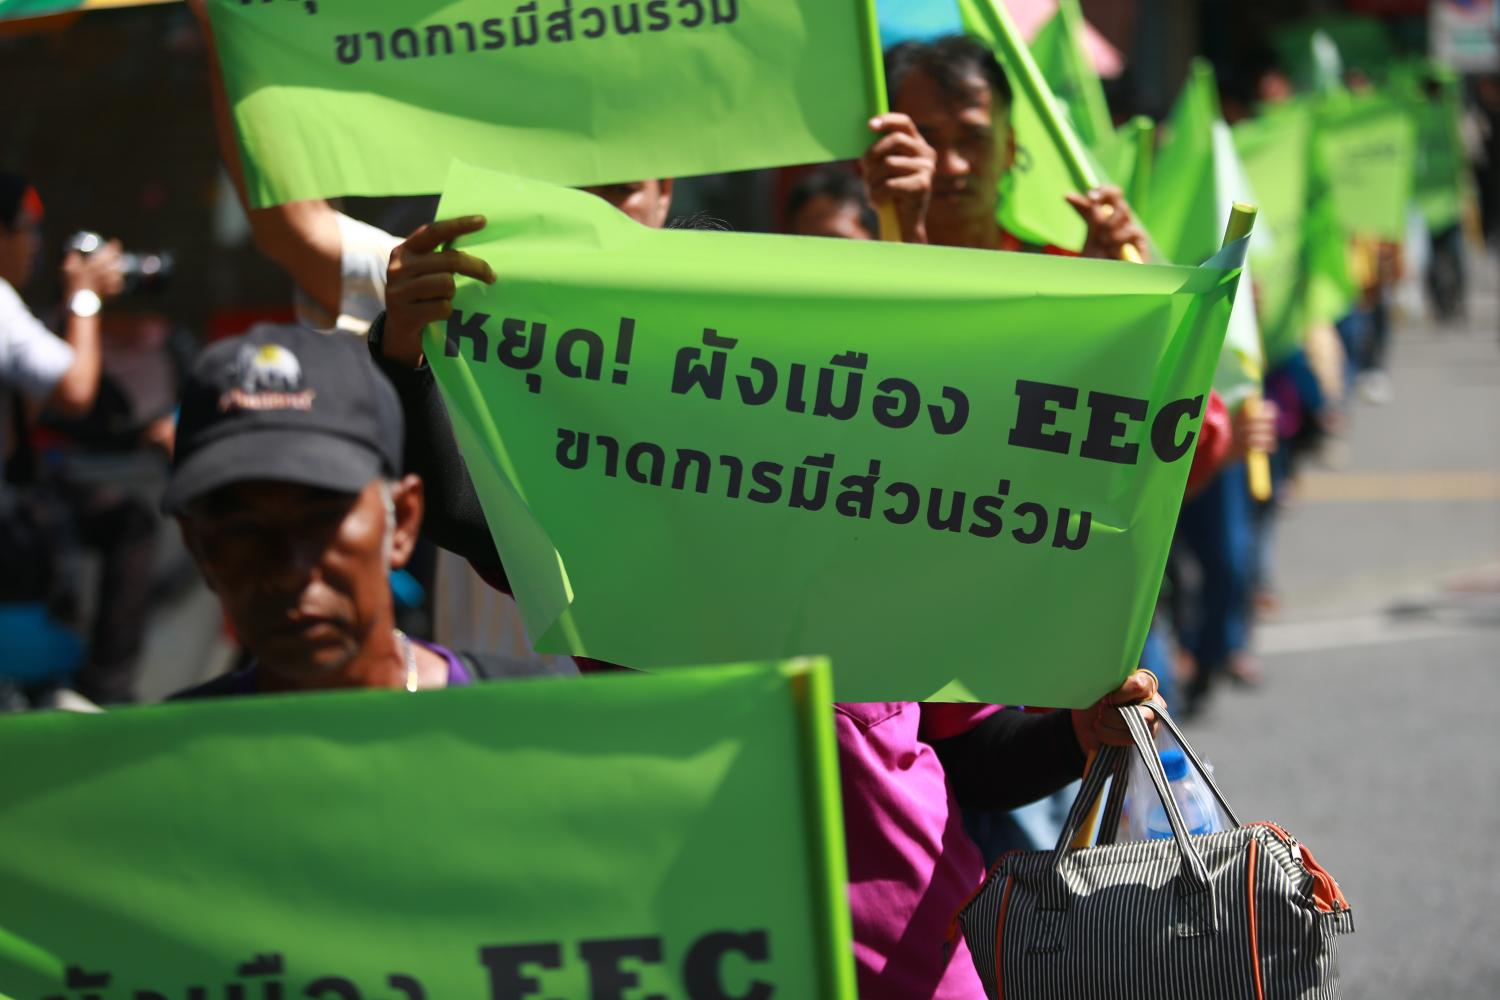 Members of the Friends of the East Network arrive in Bangkok to complain to the prime minister about the Eastern Economic Corridor project's city plan.(Photo by Somchai Poomlard)